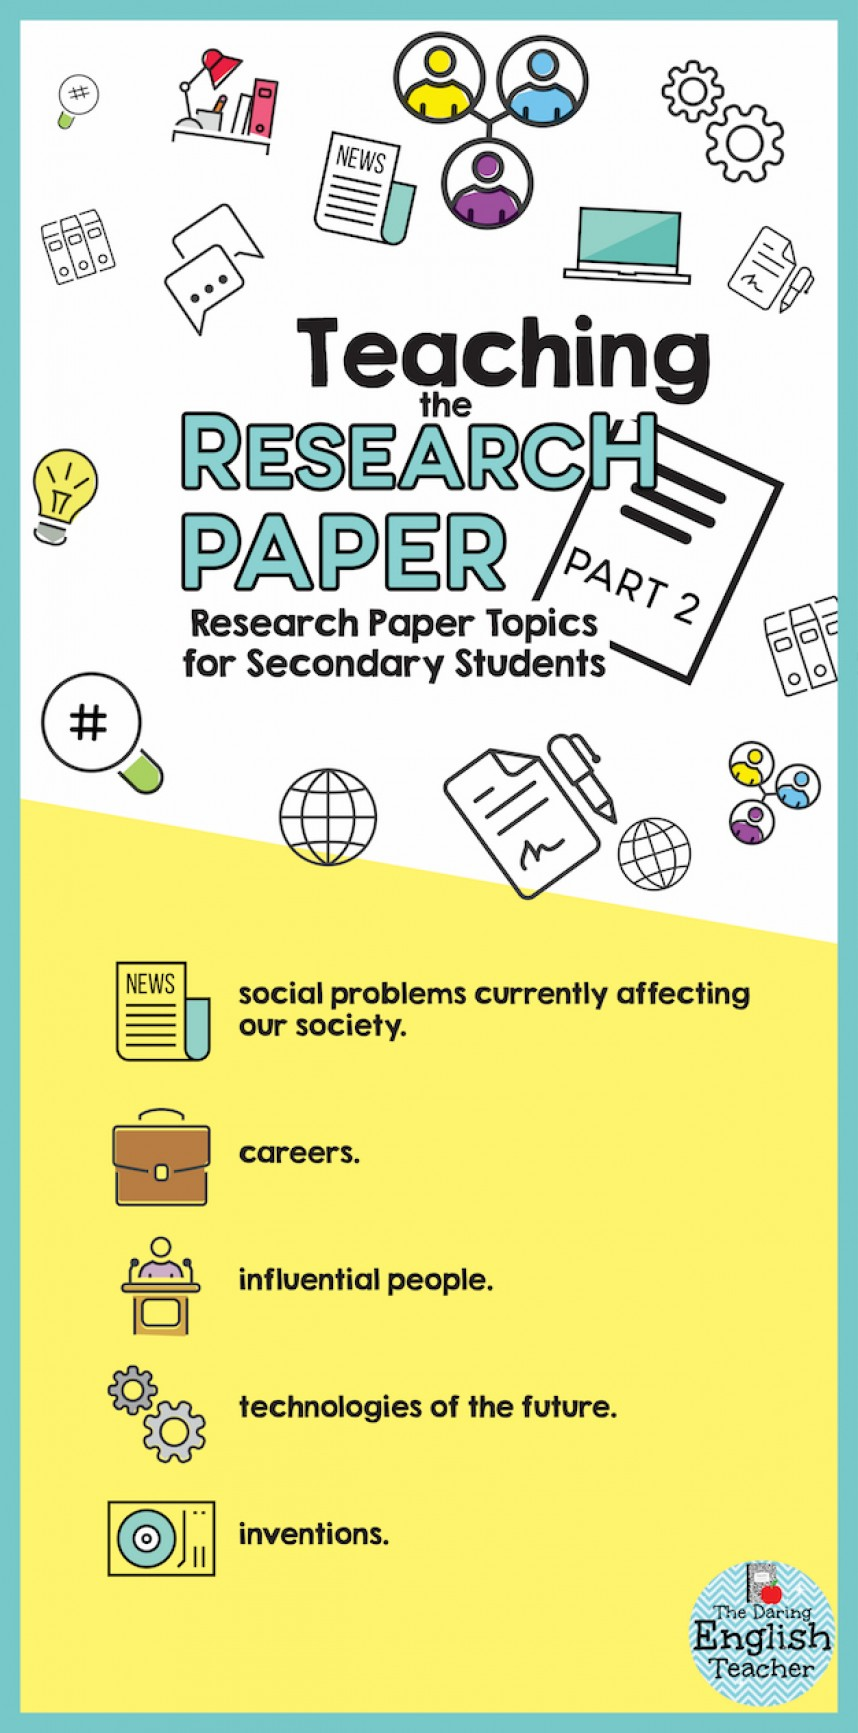 002 Good Research Paper Topics For 10th Grade English Awesome